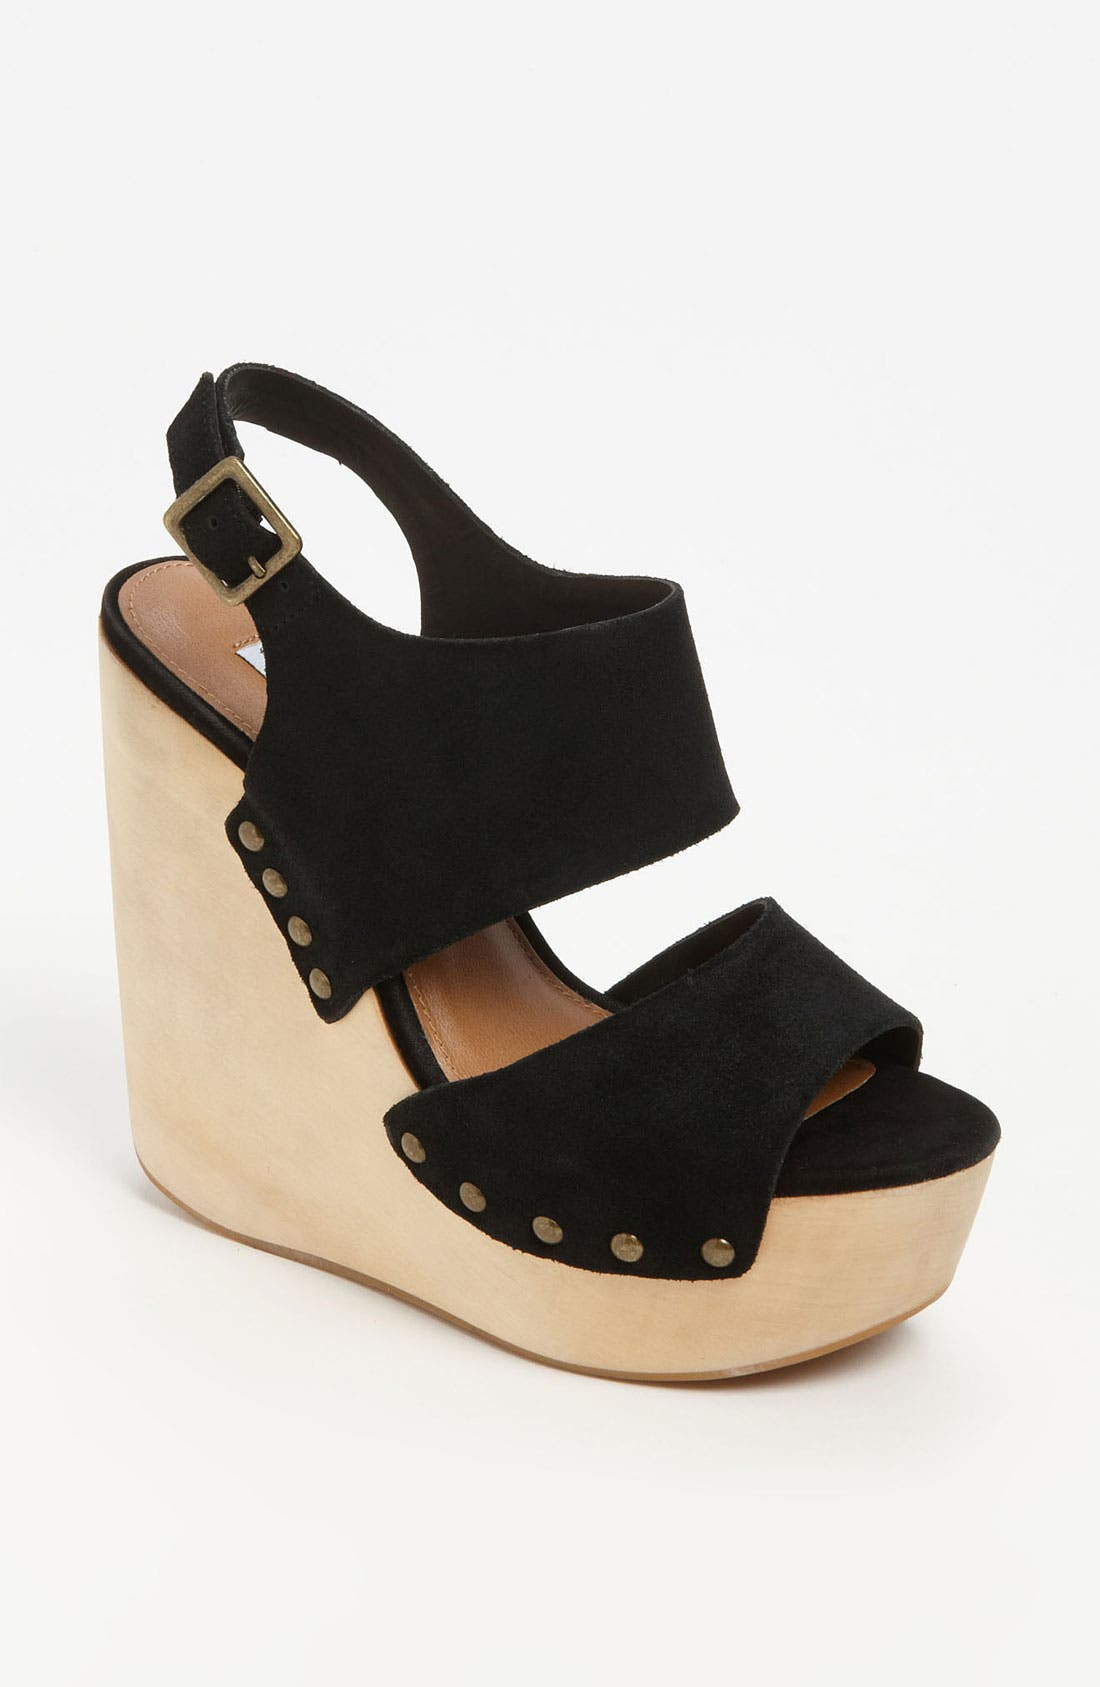 Alternate Image 1 Selected - Steve Madden 'Auraa' Wedge Sandal